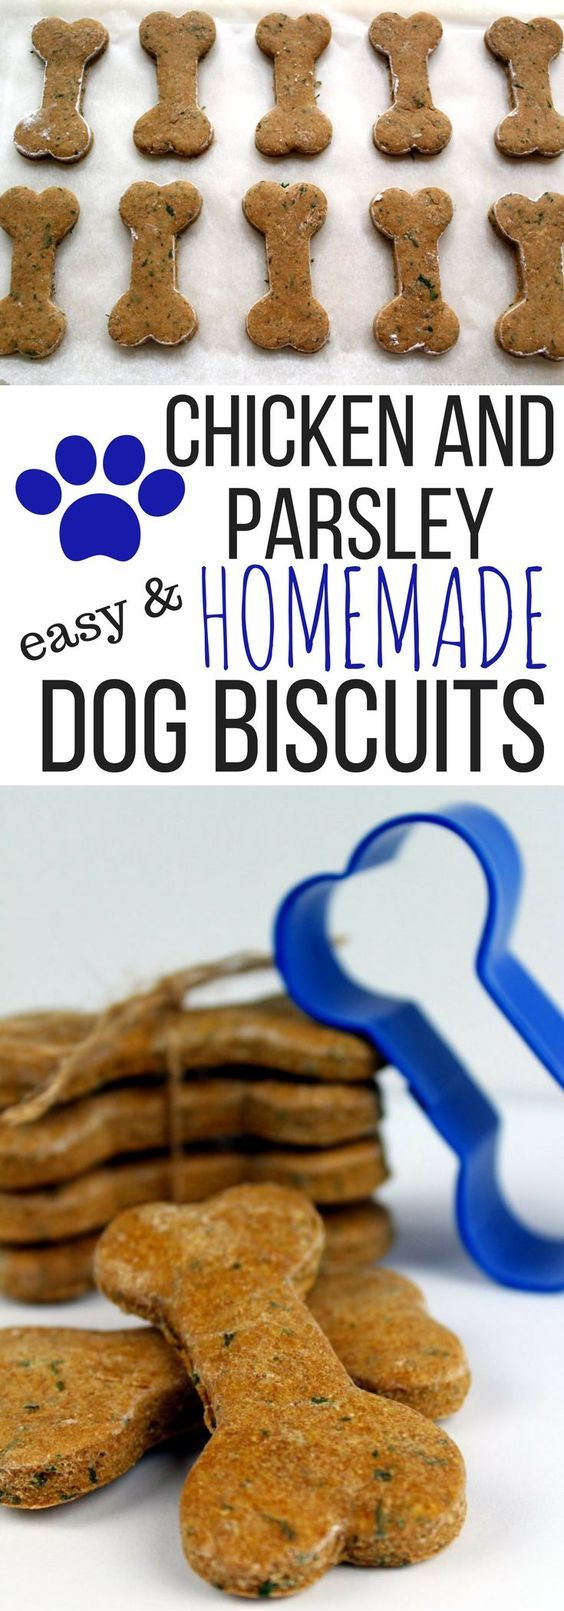 If you are looking for an easy dog biscuit recipe you will love this Chicken and Parsley Homemade Dog Biscuit Recipe. A Healthy Dog Biscuit recipe makes a great easy dog treat.